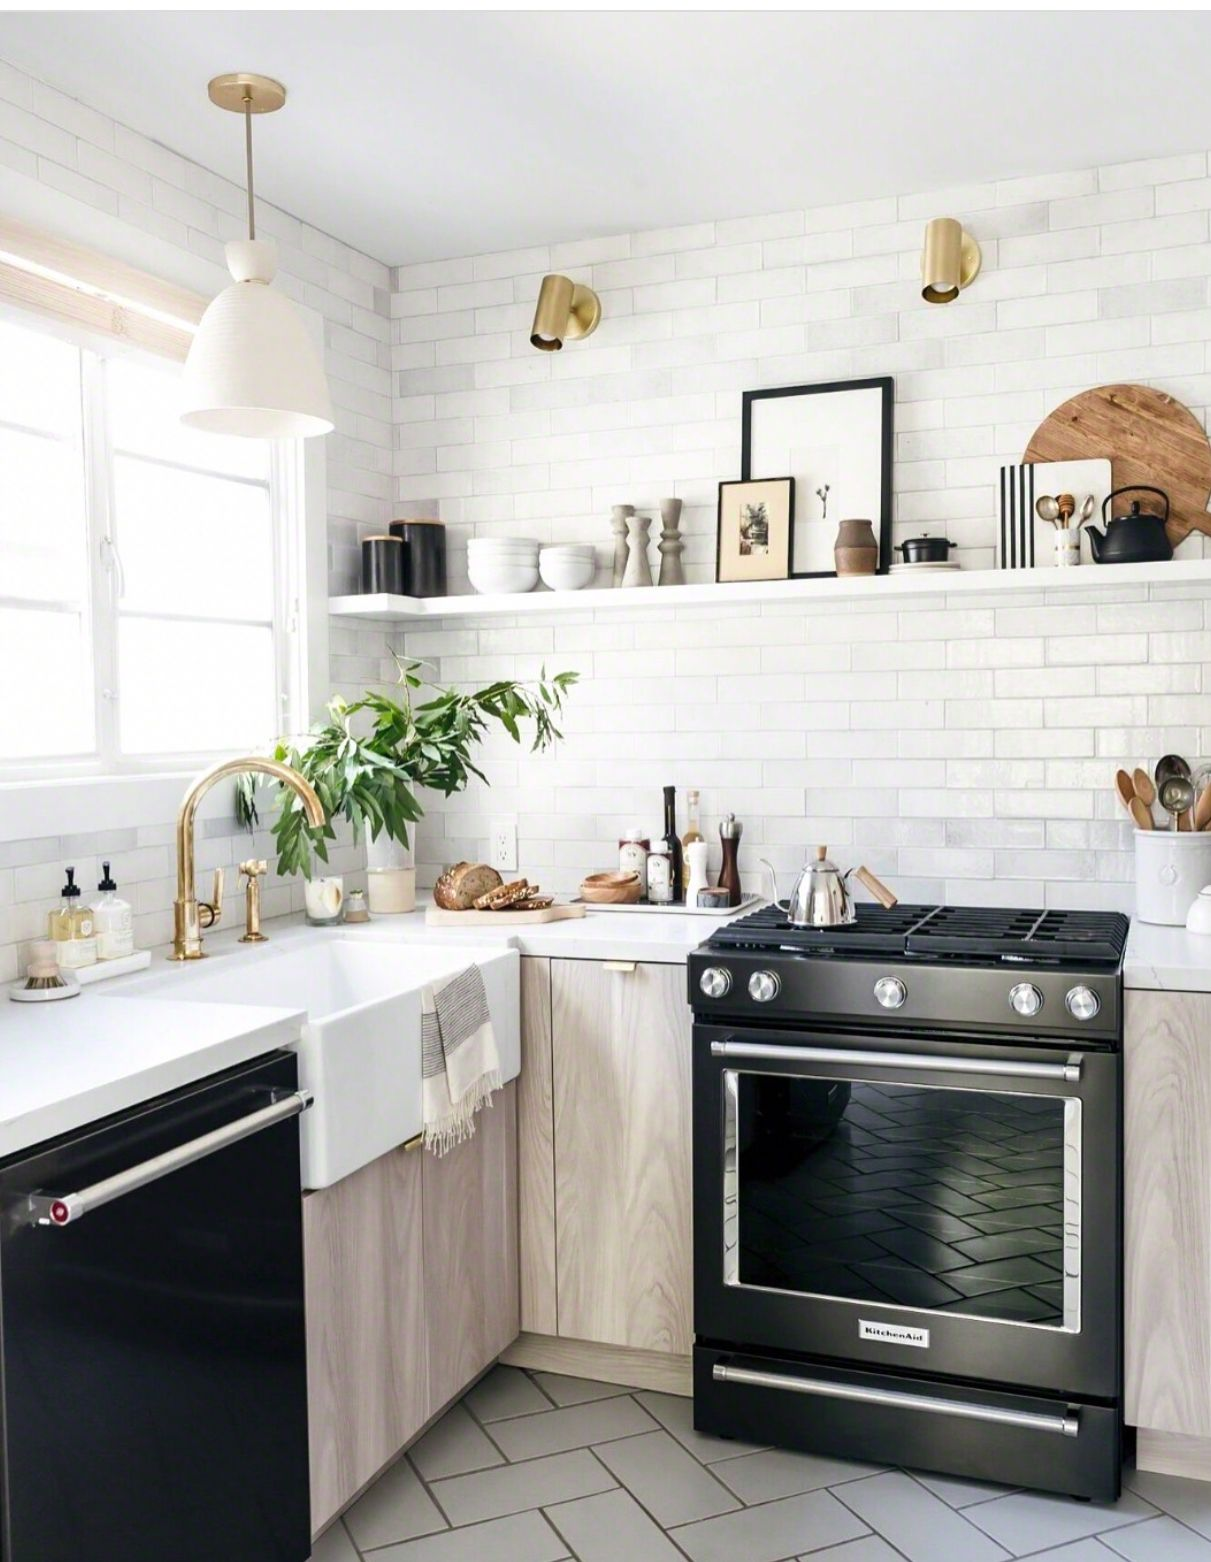 pin by nicole dianne on kitchen cooking kitchen remodel rh pinterest com